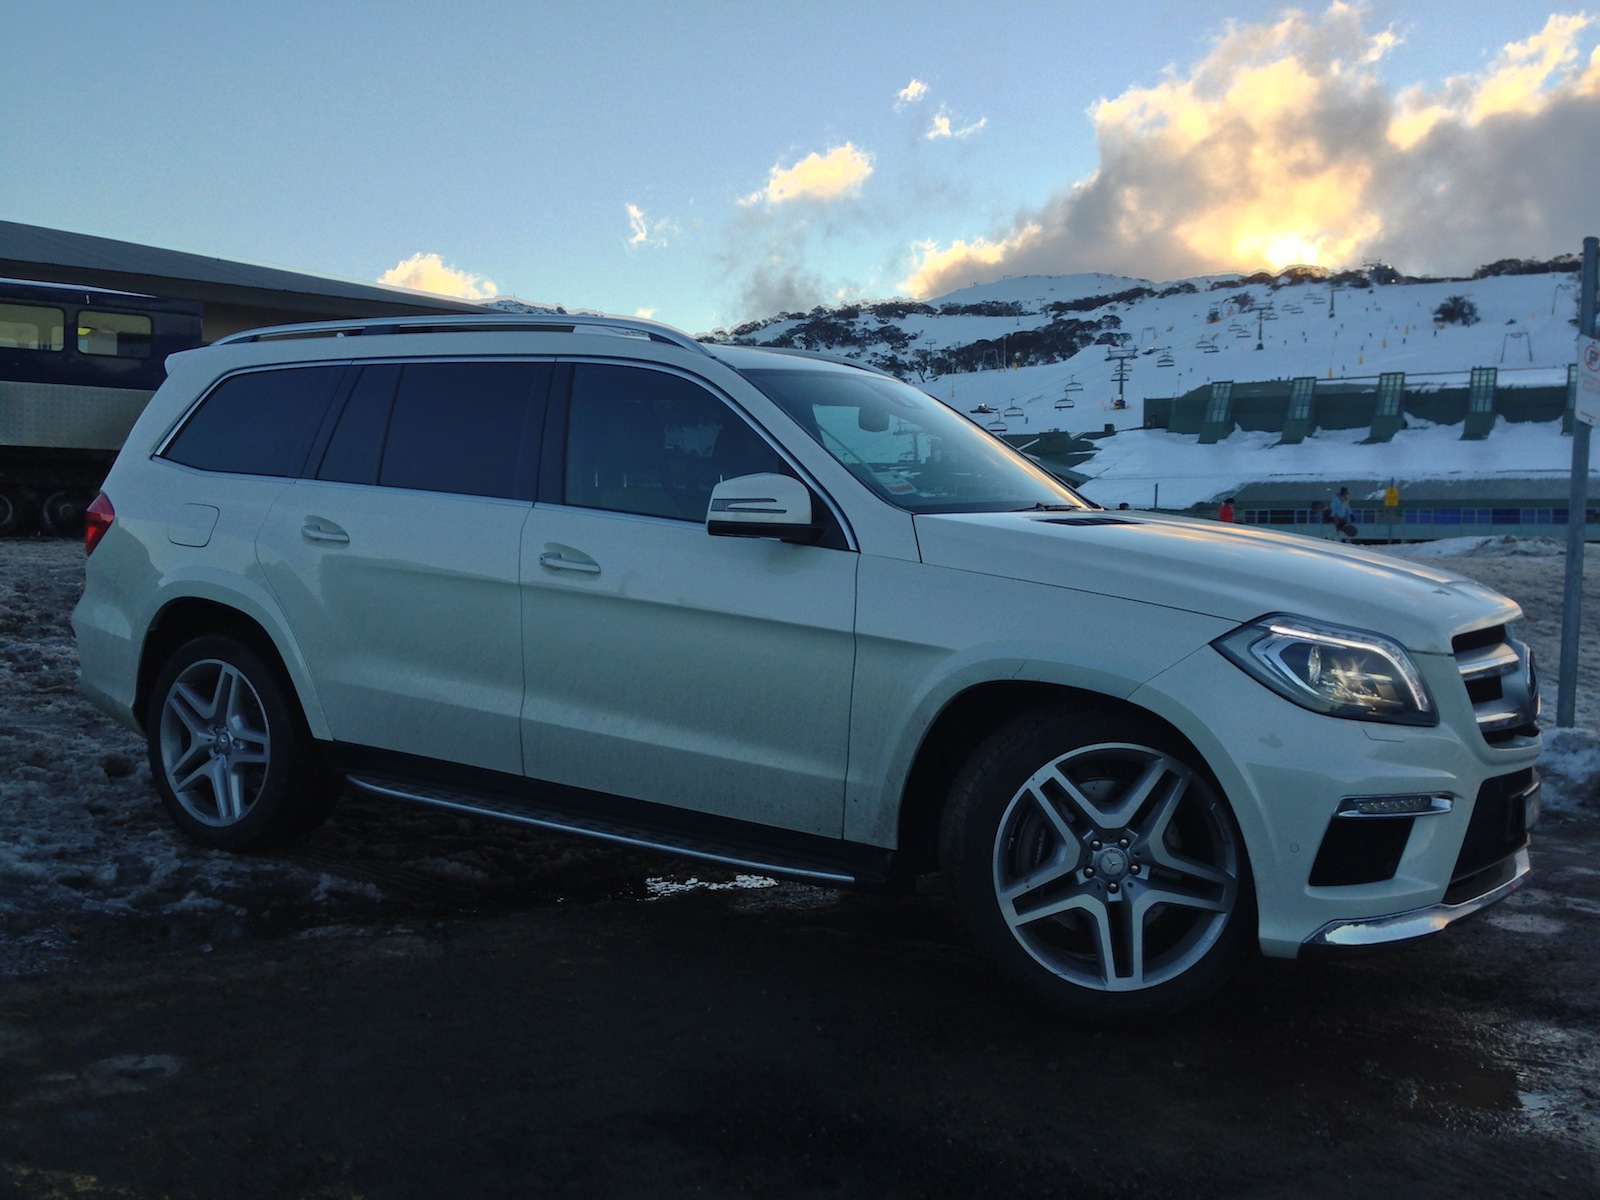 2013 mercedes benz gl review gl500 caradvice for Mercedes benz gl 2013 price